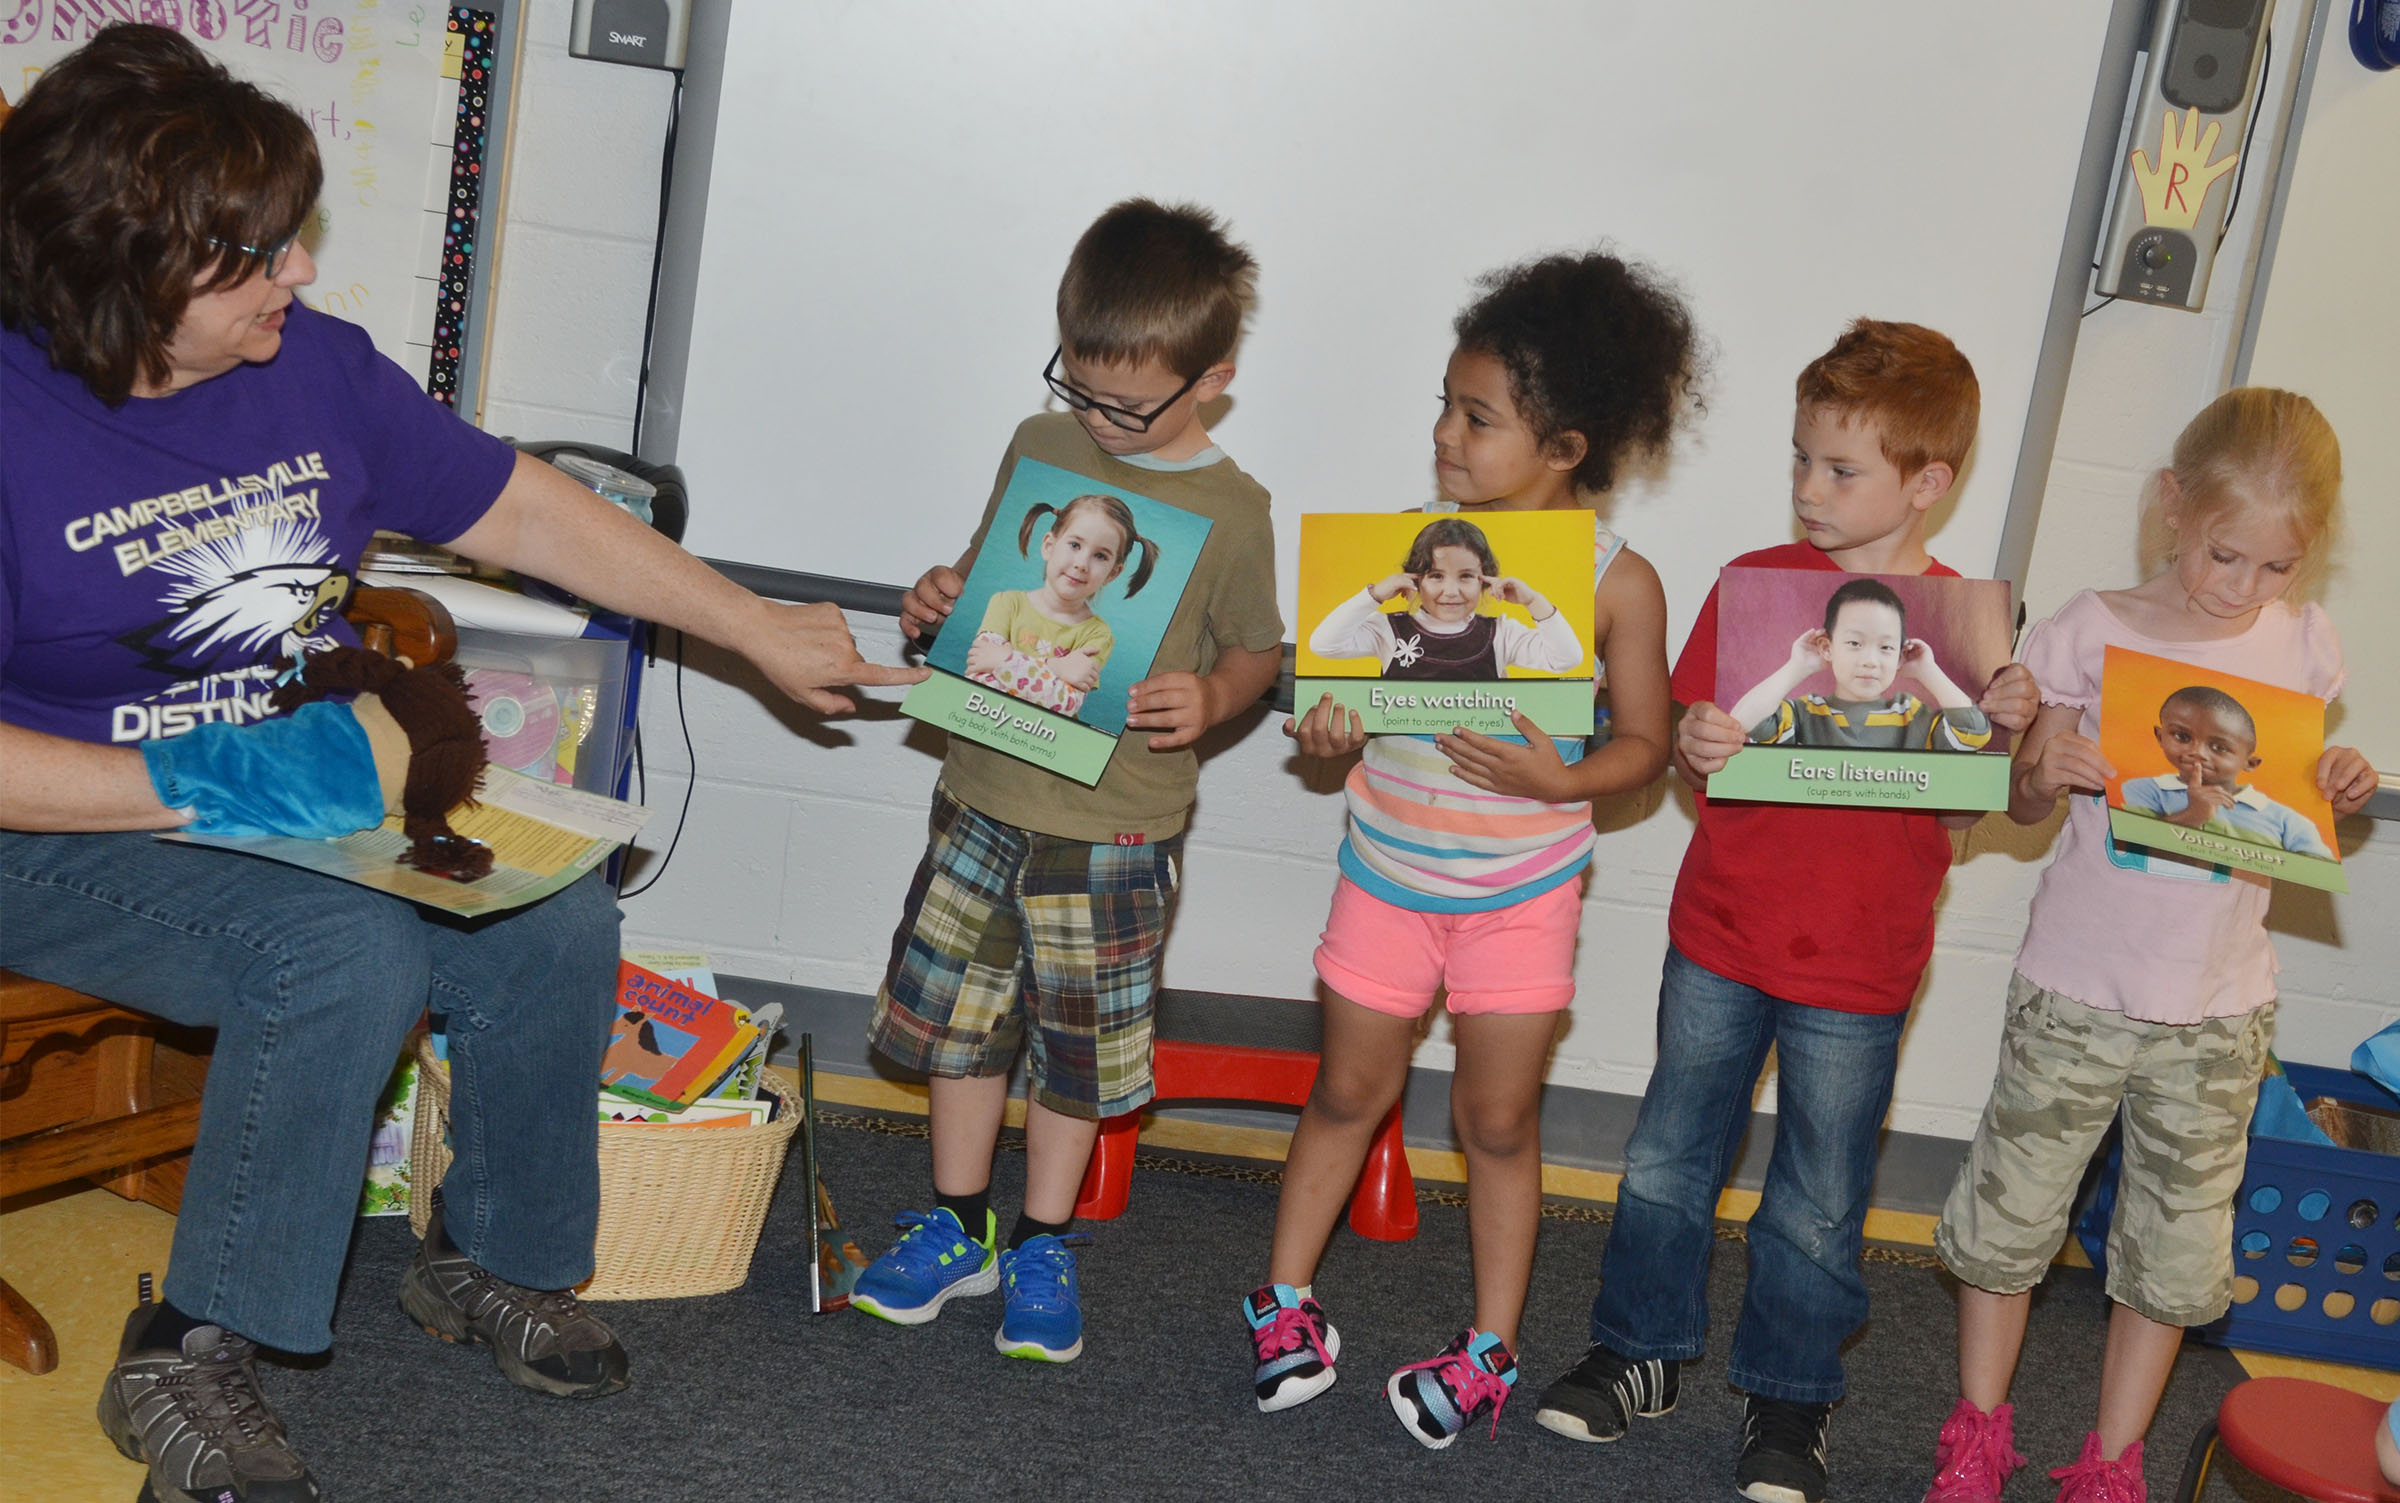 Susan Kennon, a Campbellsville Family Resource and Youth Services Center liaison at CES, talks to CES preschool students about how they should manage their behavior in kindergarten. From left are Reece Williams, Rylee Karr, Kennon Dotson and Alinna Bray.